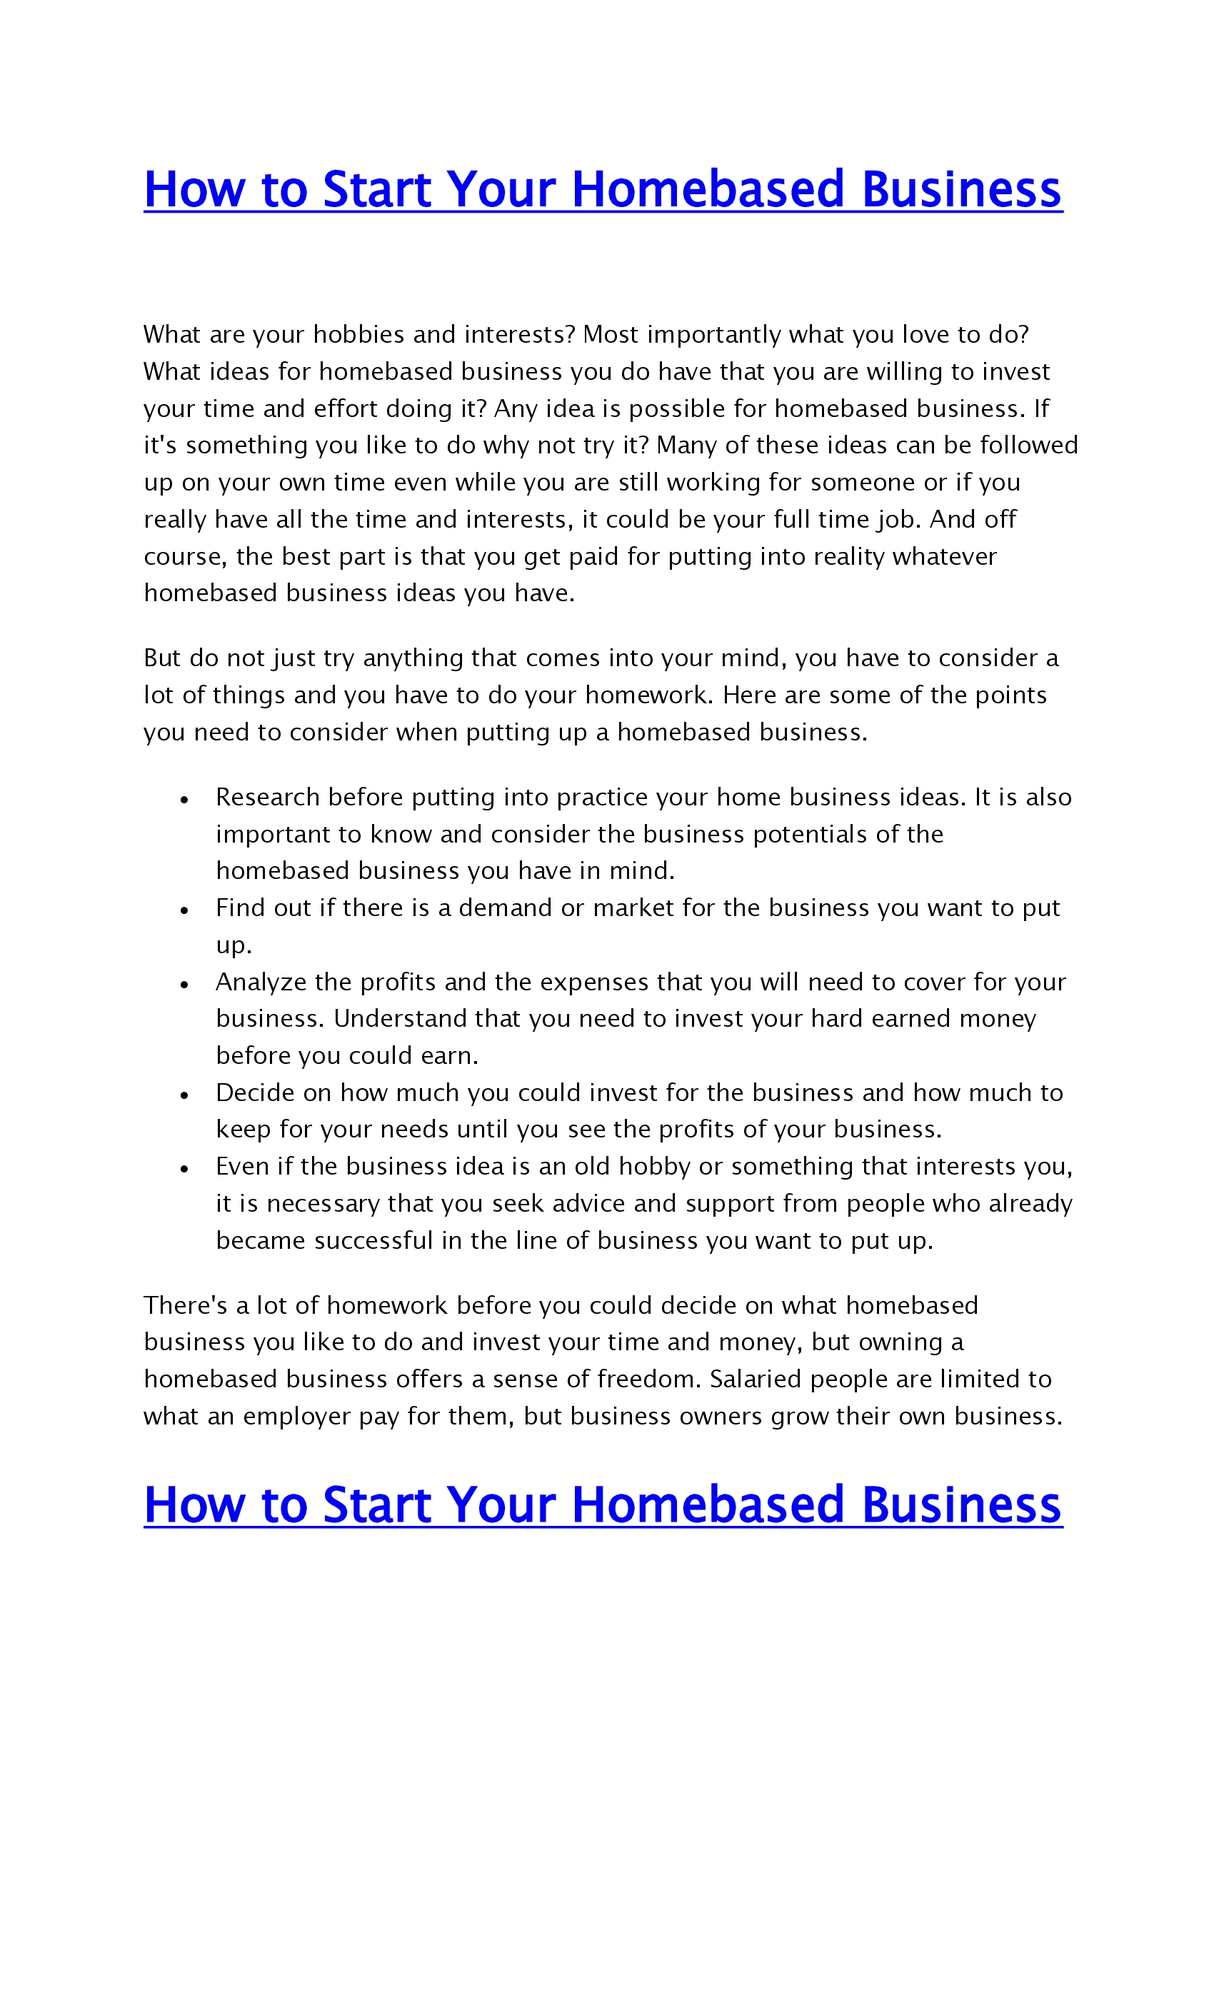 Calaméo - How to Start Your Homebased Business